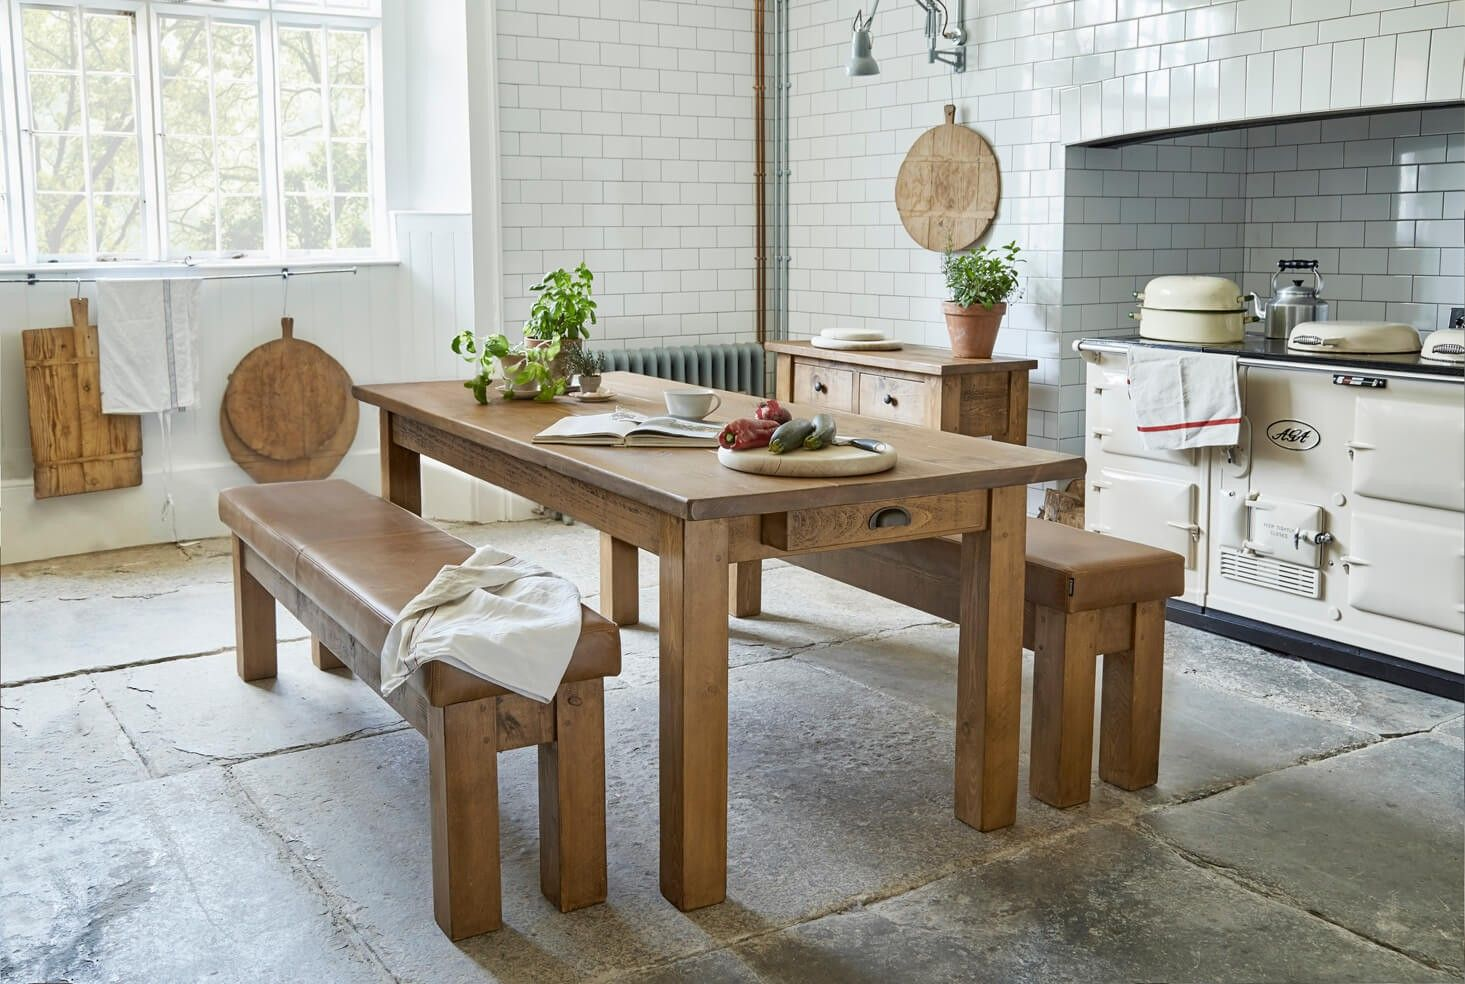 The Miller's Farmhouse Plank Table Dining table with